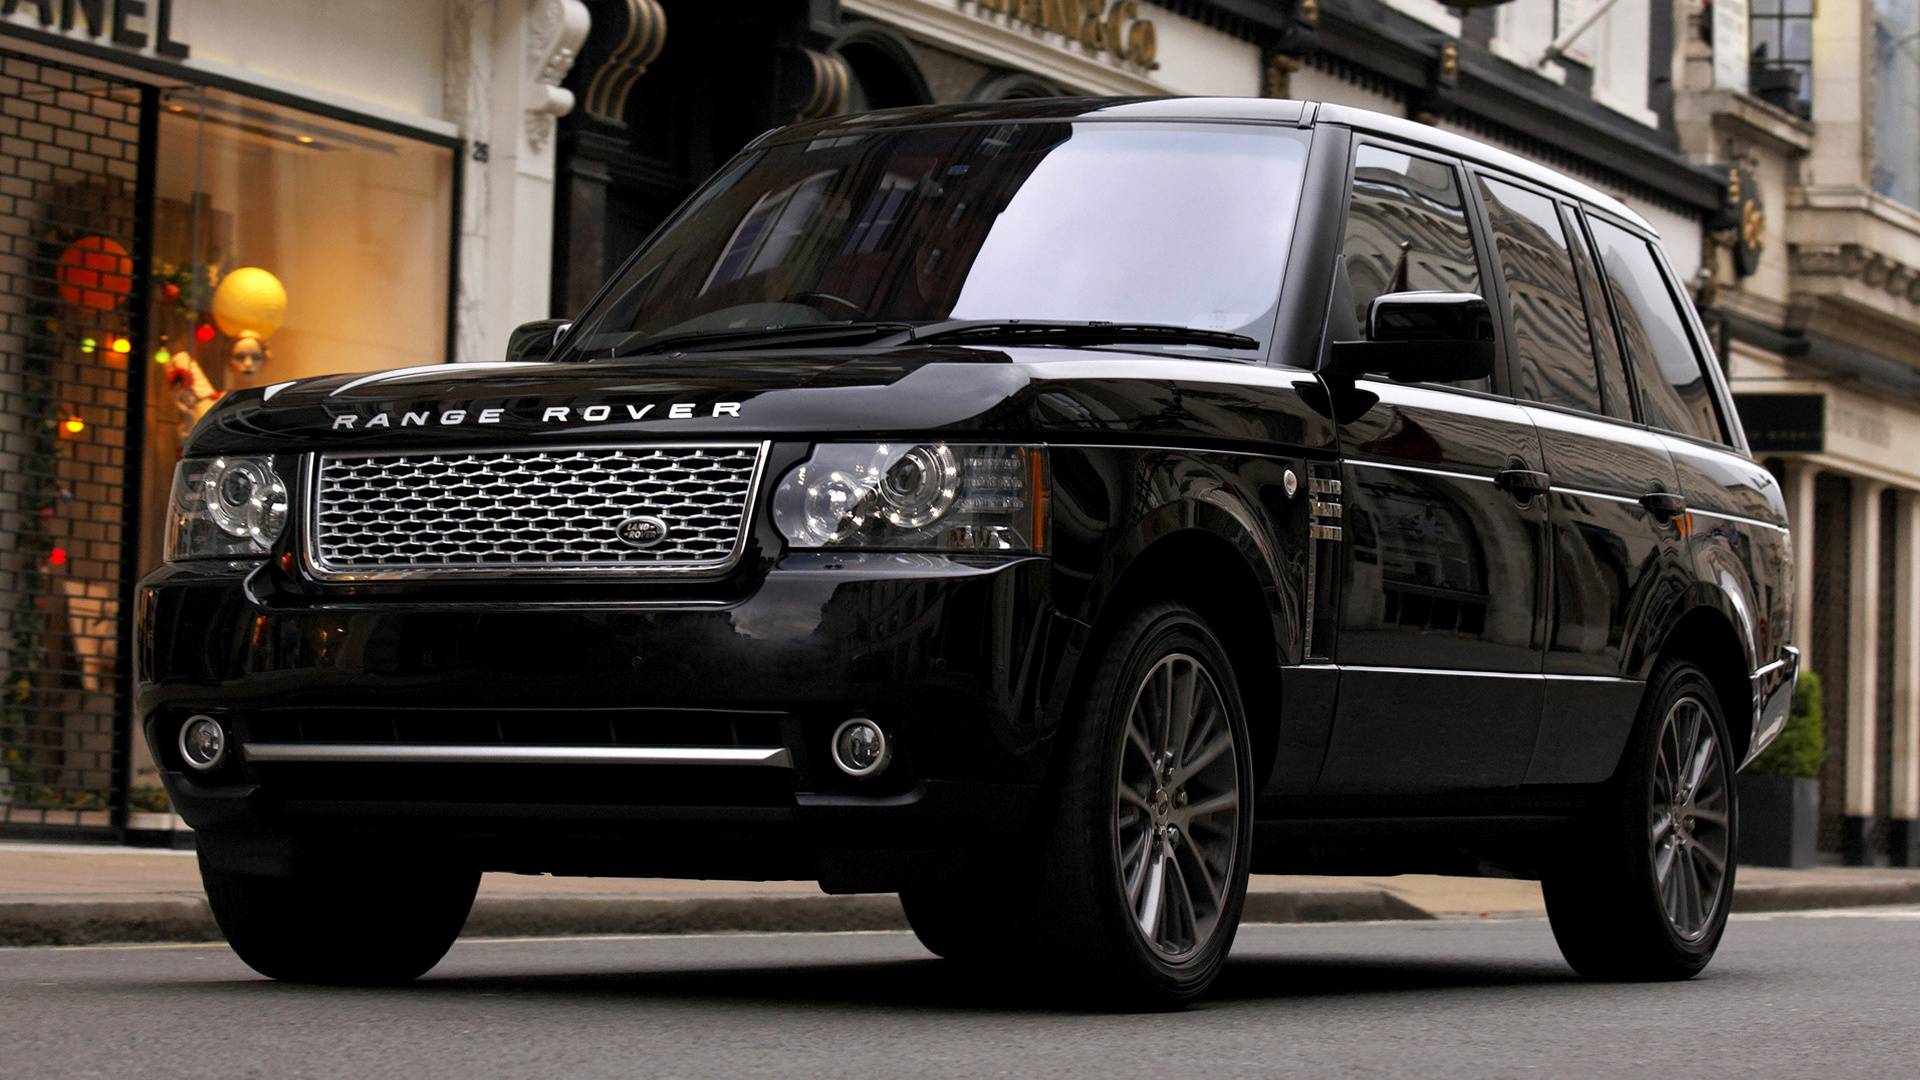 2010 Range Rover Autobiography Black (UK) - Wallpapers and ...